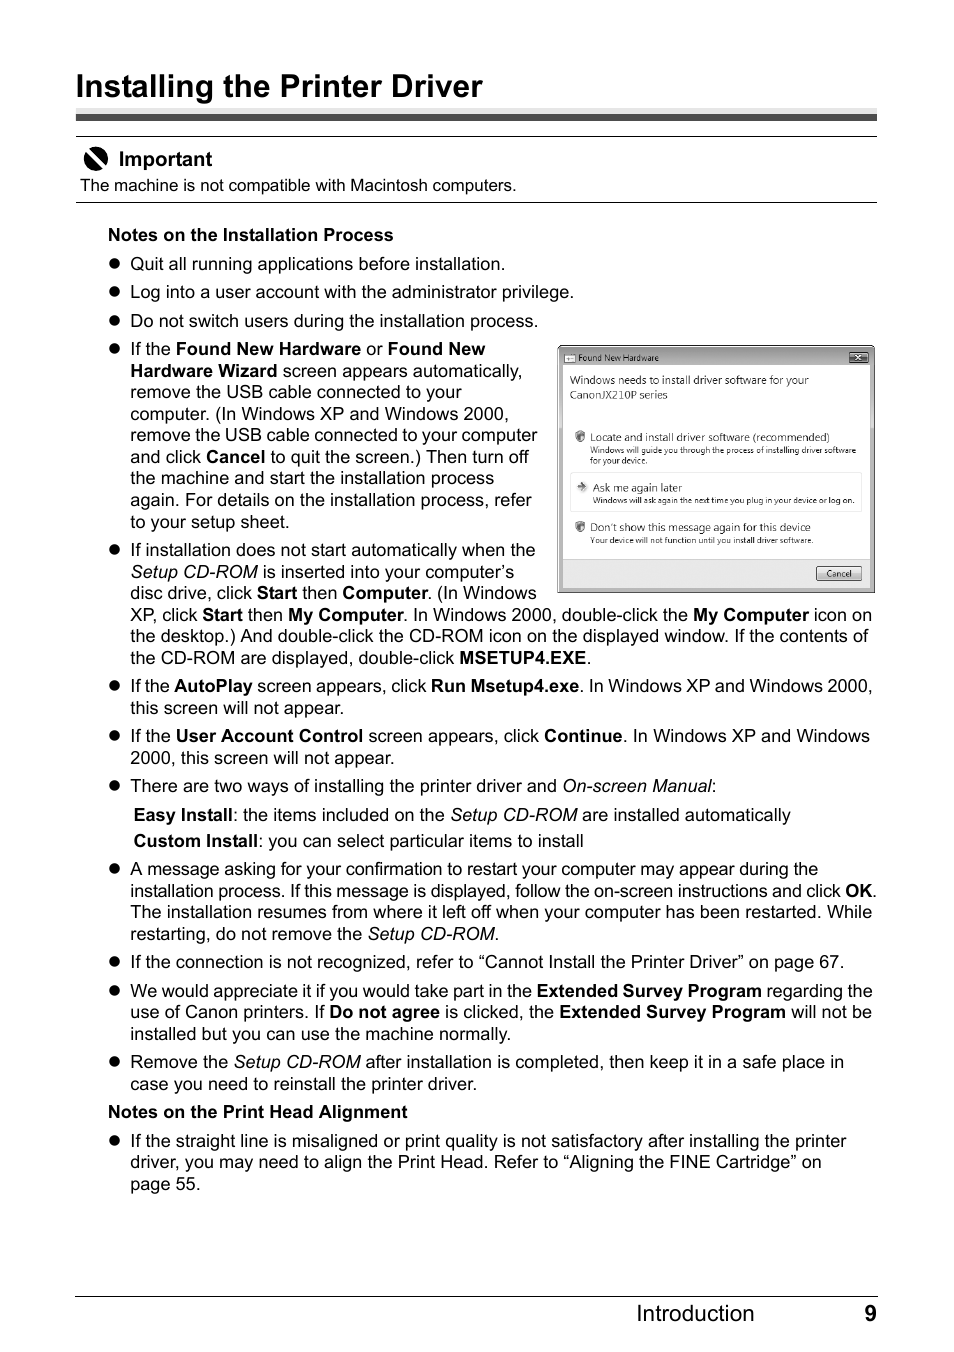 Installing the printer driver | Canon FAX-JX210P User Manual | Page 10 / 86